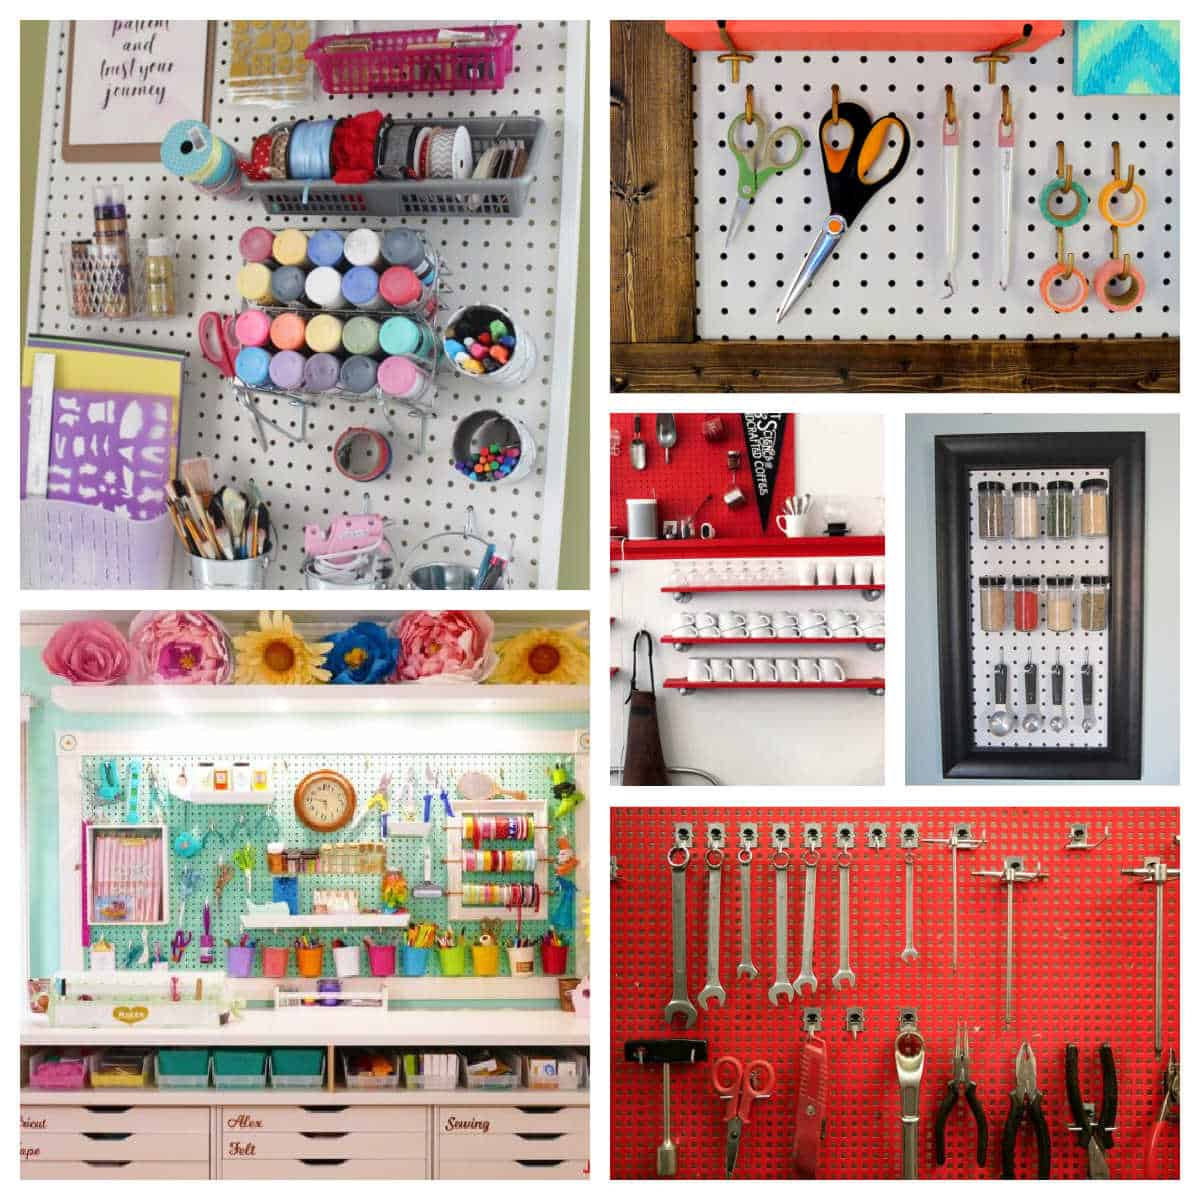 different pegboard ideas in an image collage